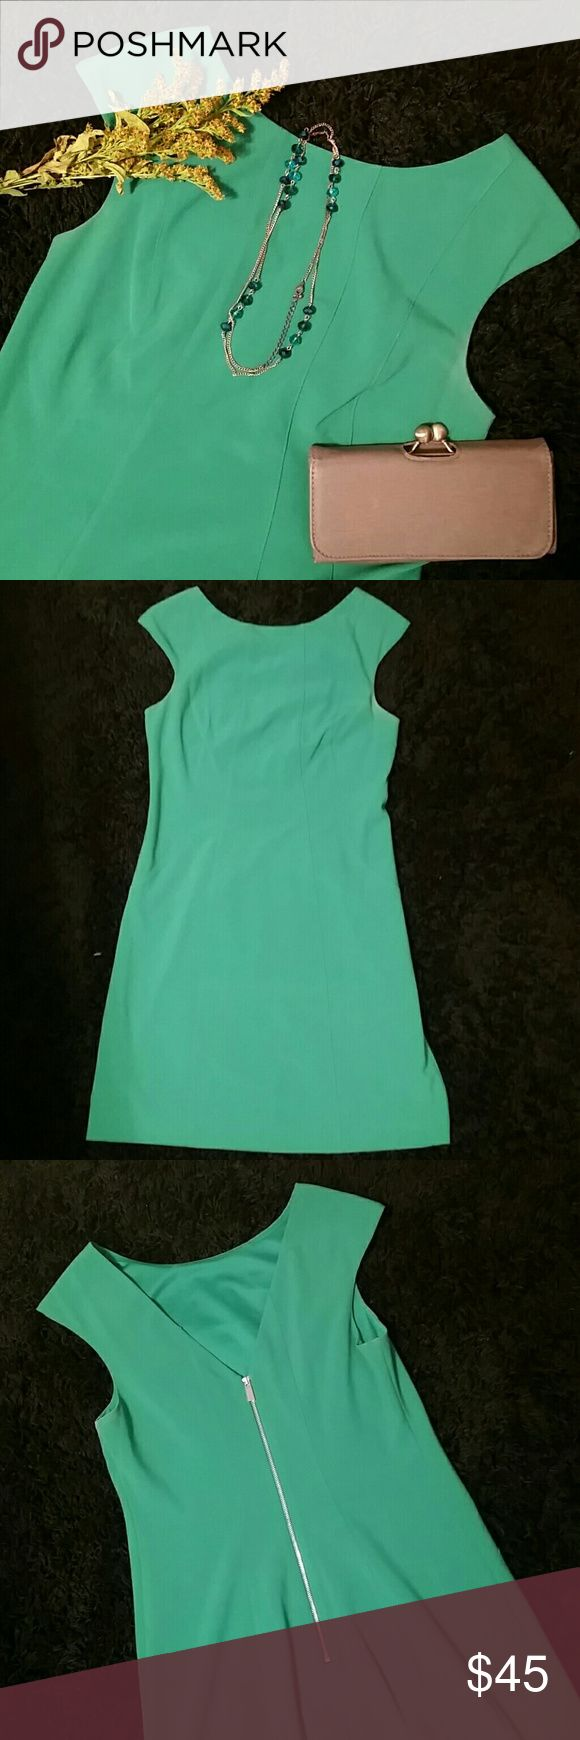 Vince Camuto - Kelly Green Dress - Zipped back - 4 Vince Camuto - Kelly Green Dress - Zipped back - 4. Great condition.  Worn only a couple times. Doesn't fit me anymore. Color is true kelly green.  See last picture. Vince Camuto Dresses Mini